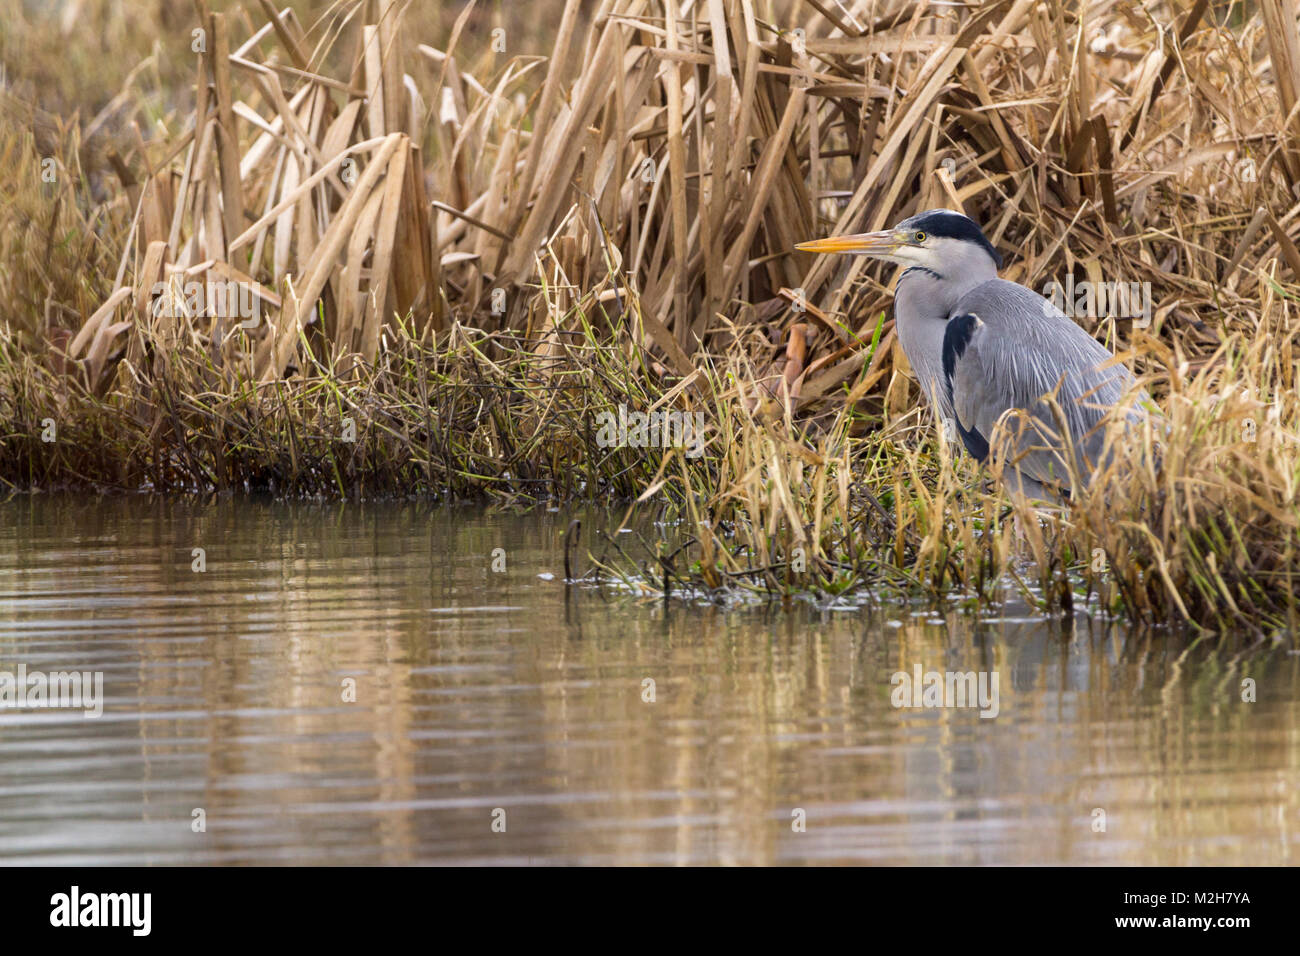 Grey Heron (Ardea cinerea) settled in lakeside rushes. Blue grey with white and black markings long yellow dagger - Stock Image